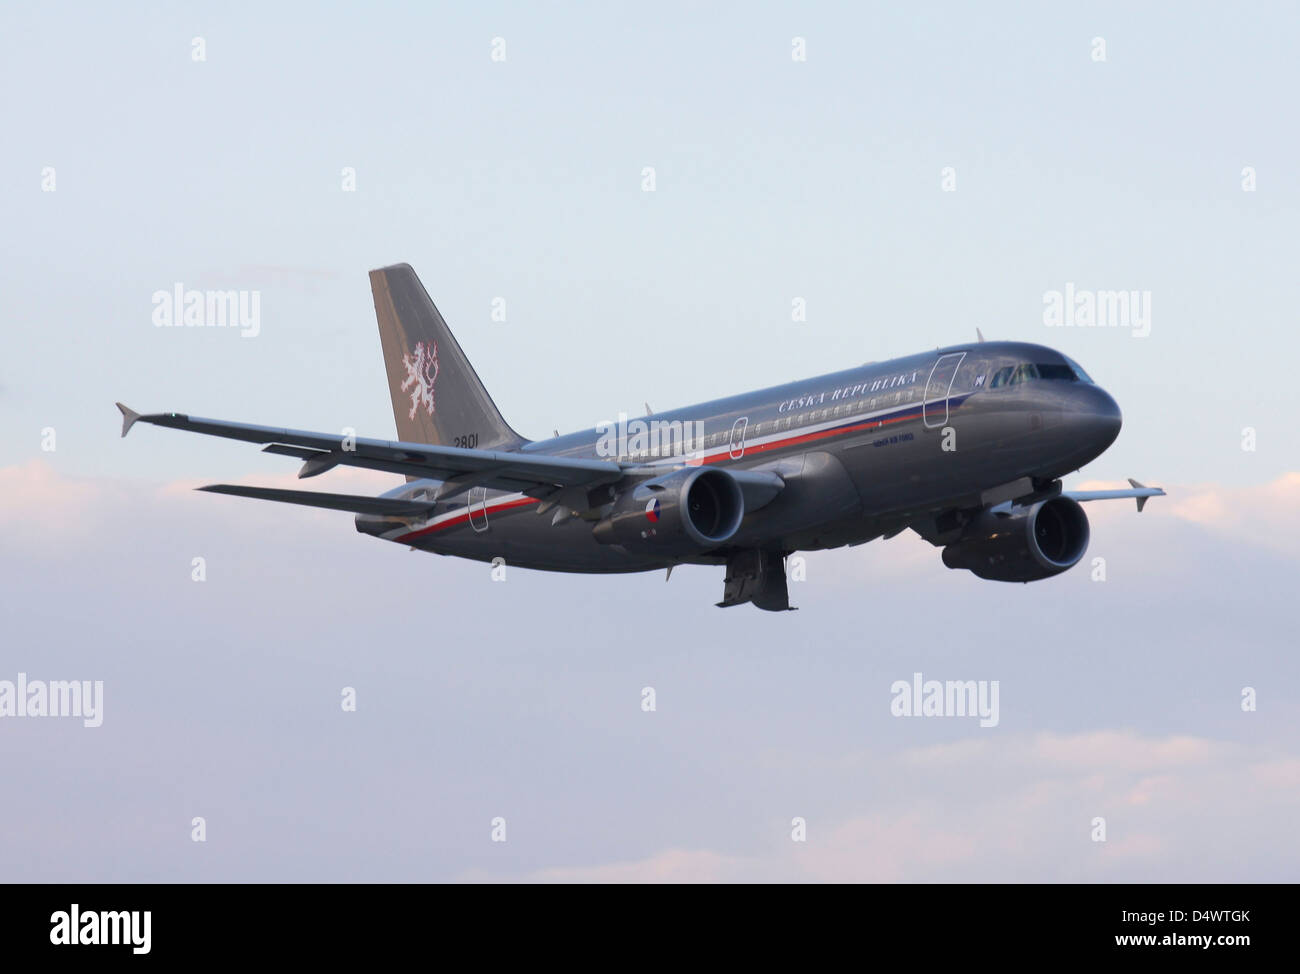 Czech Air Force flagship Airbus A319, Hradec Kralove, Czech Republic. - Stock Image